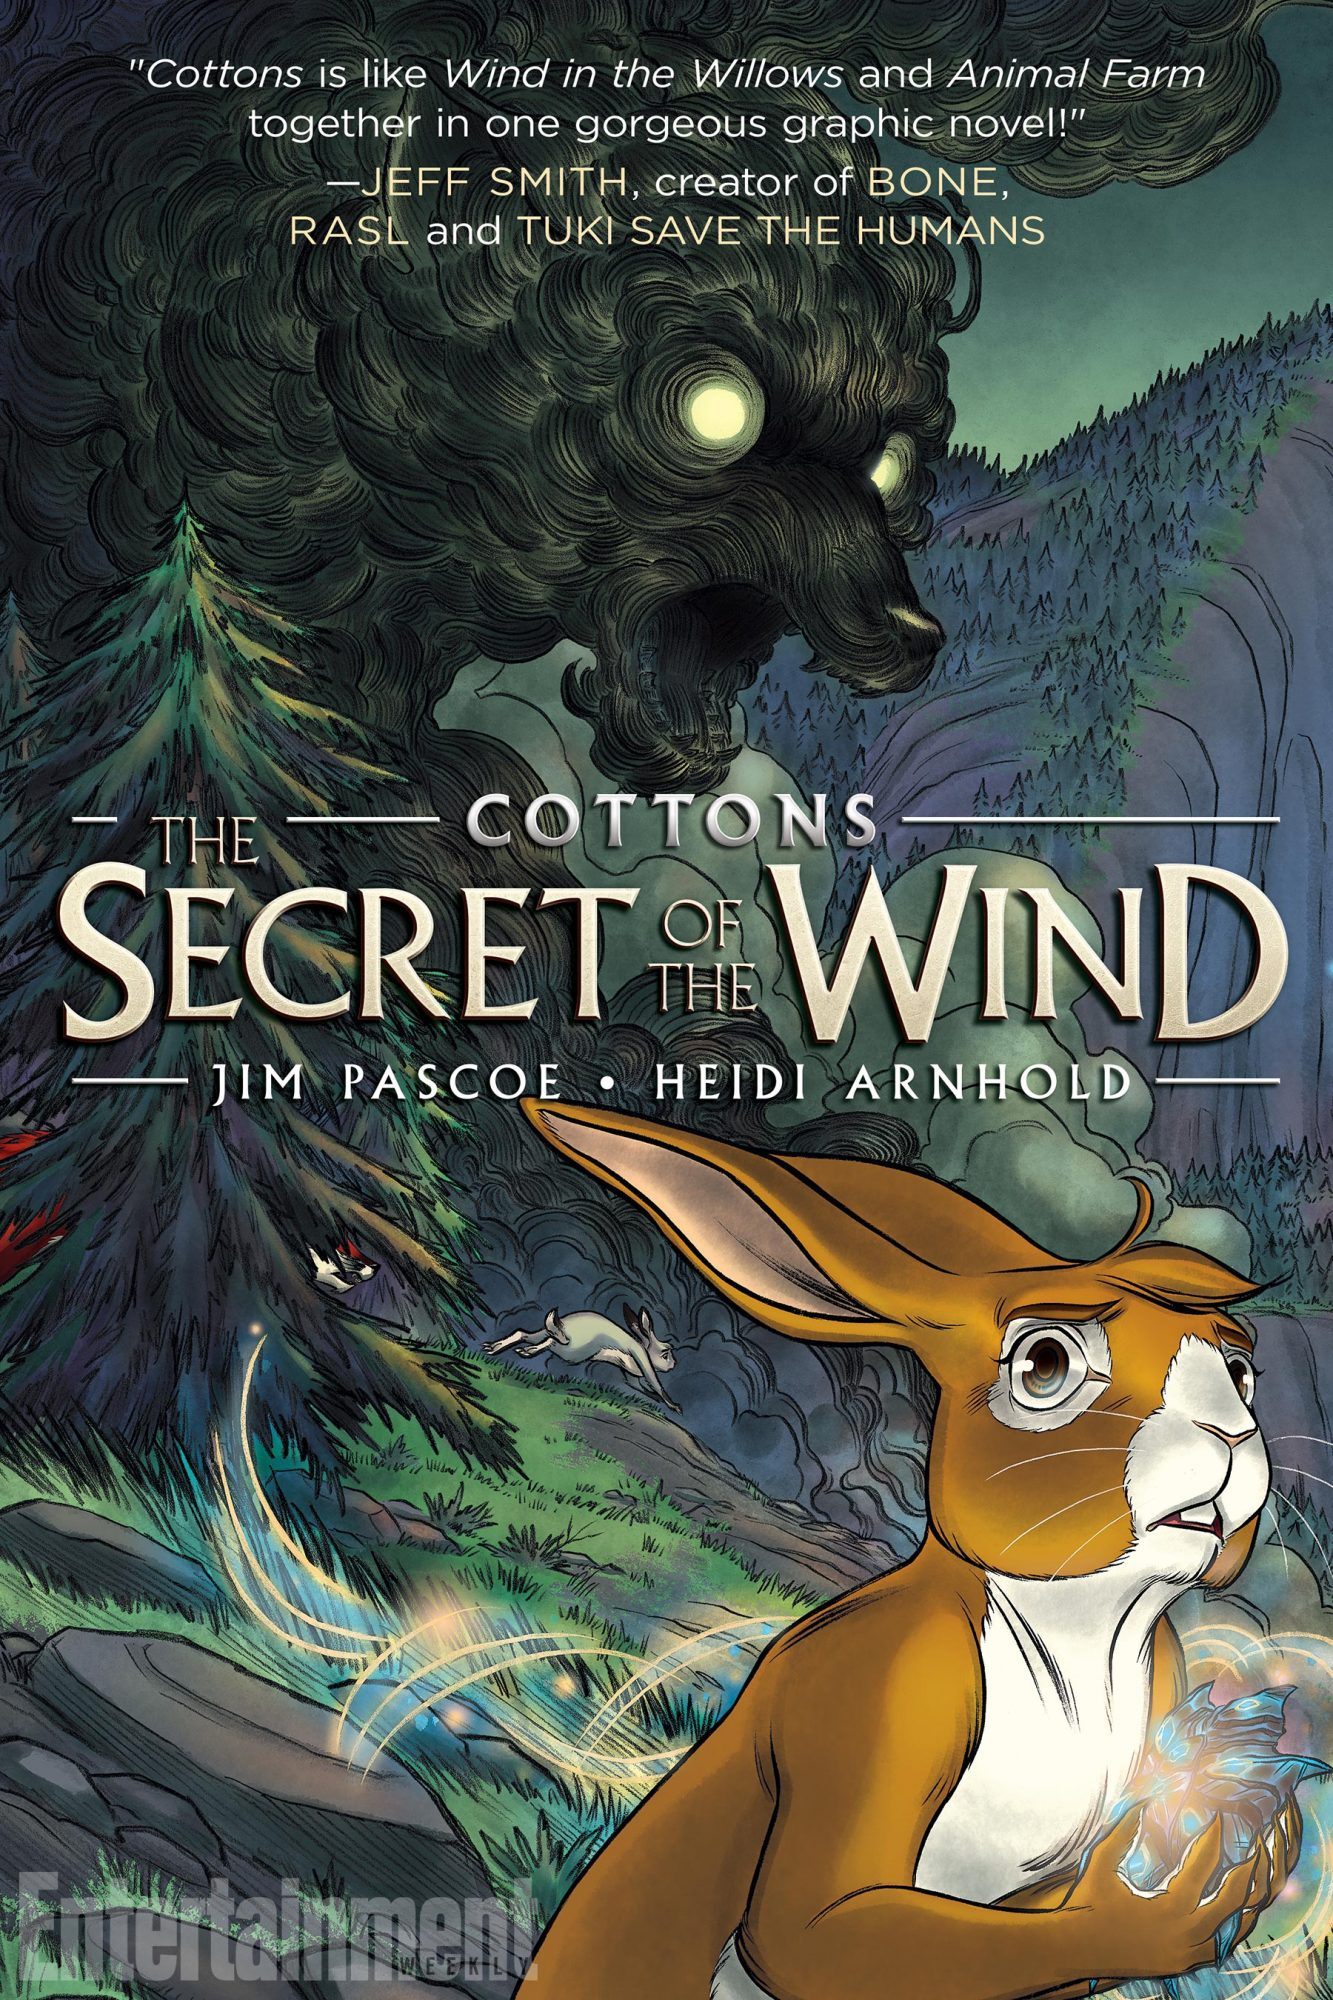 July 3, 2018                       Cottons: The Secret of the Wind, by Jim Pascoe and Heidi Arnhold